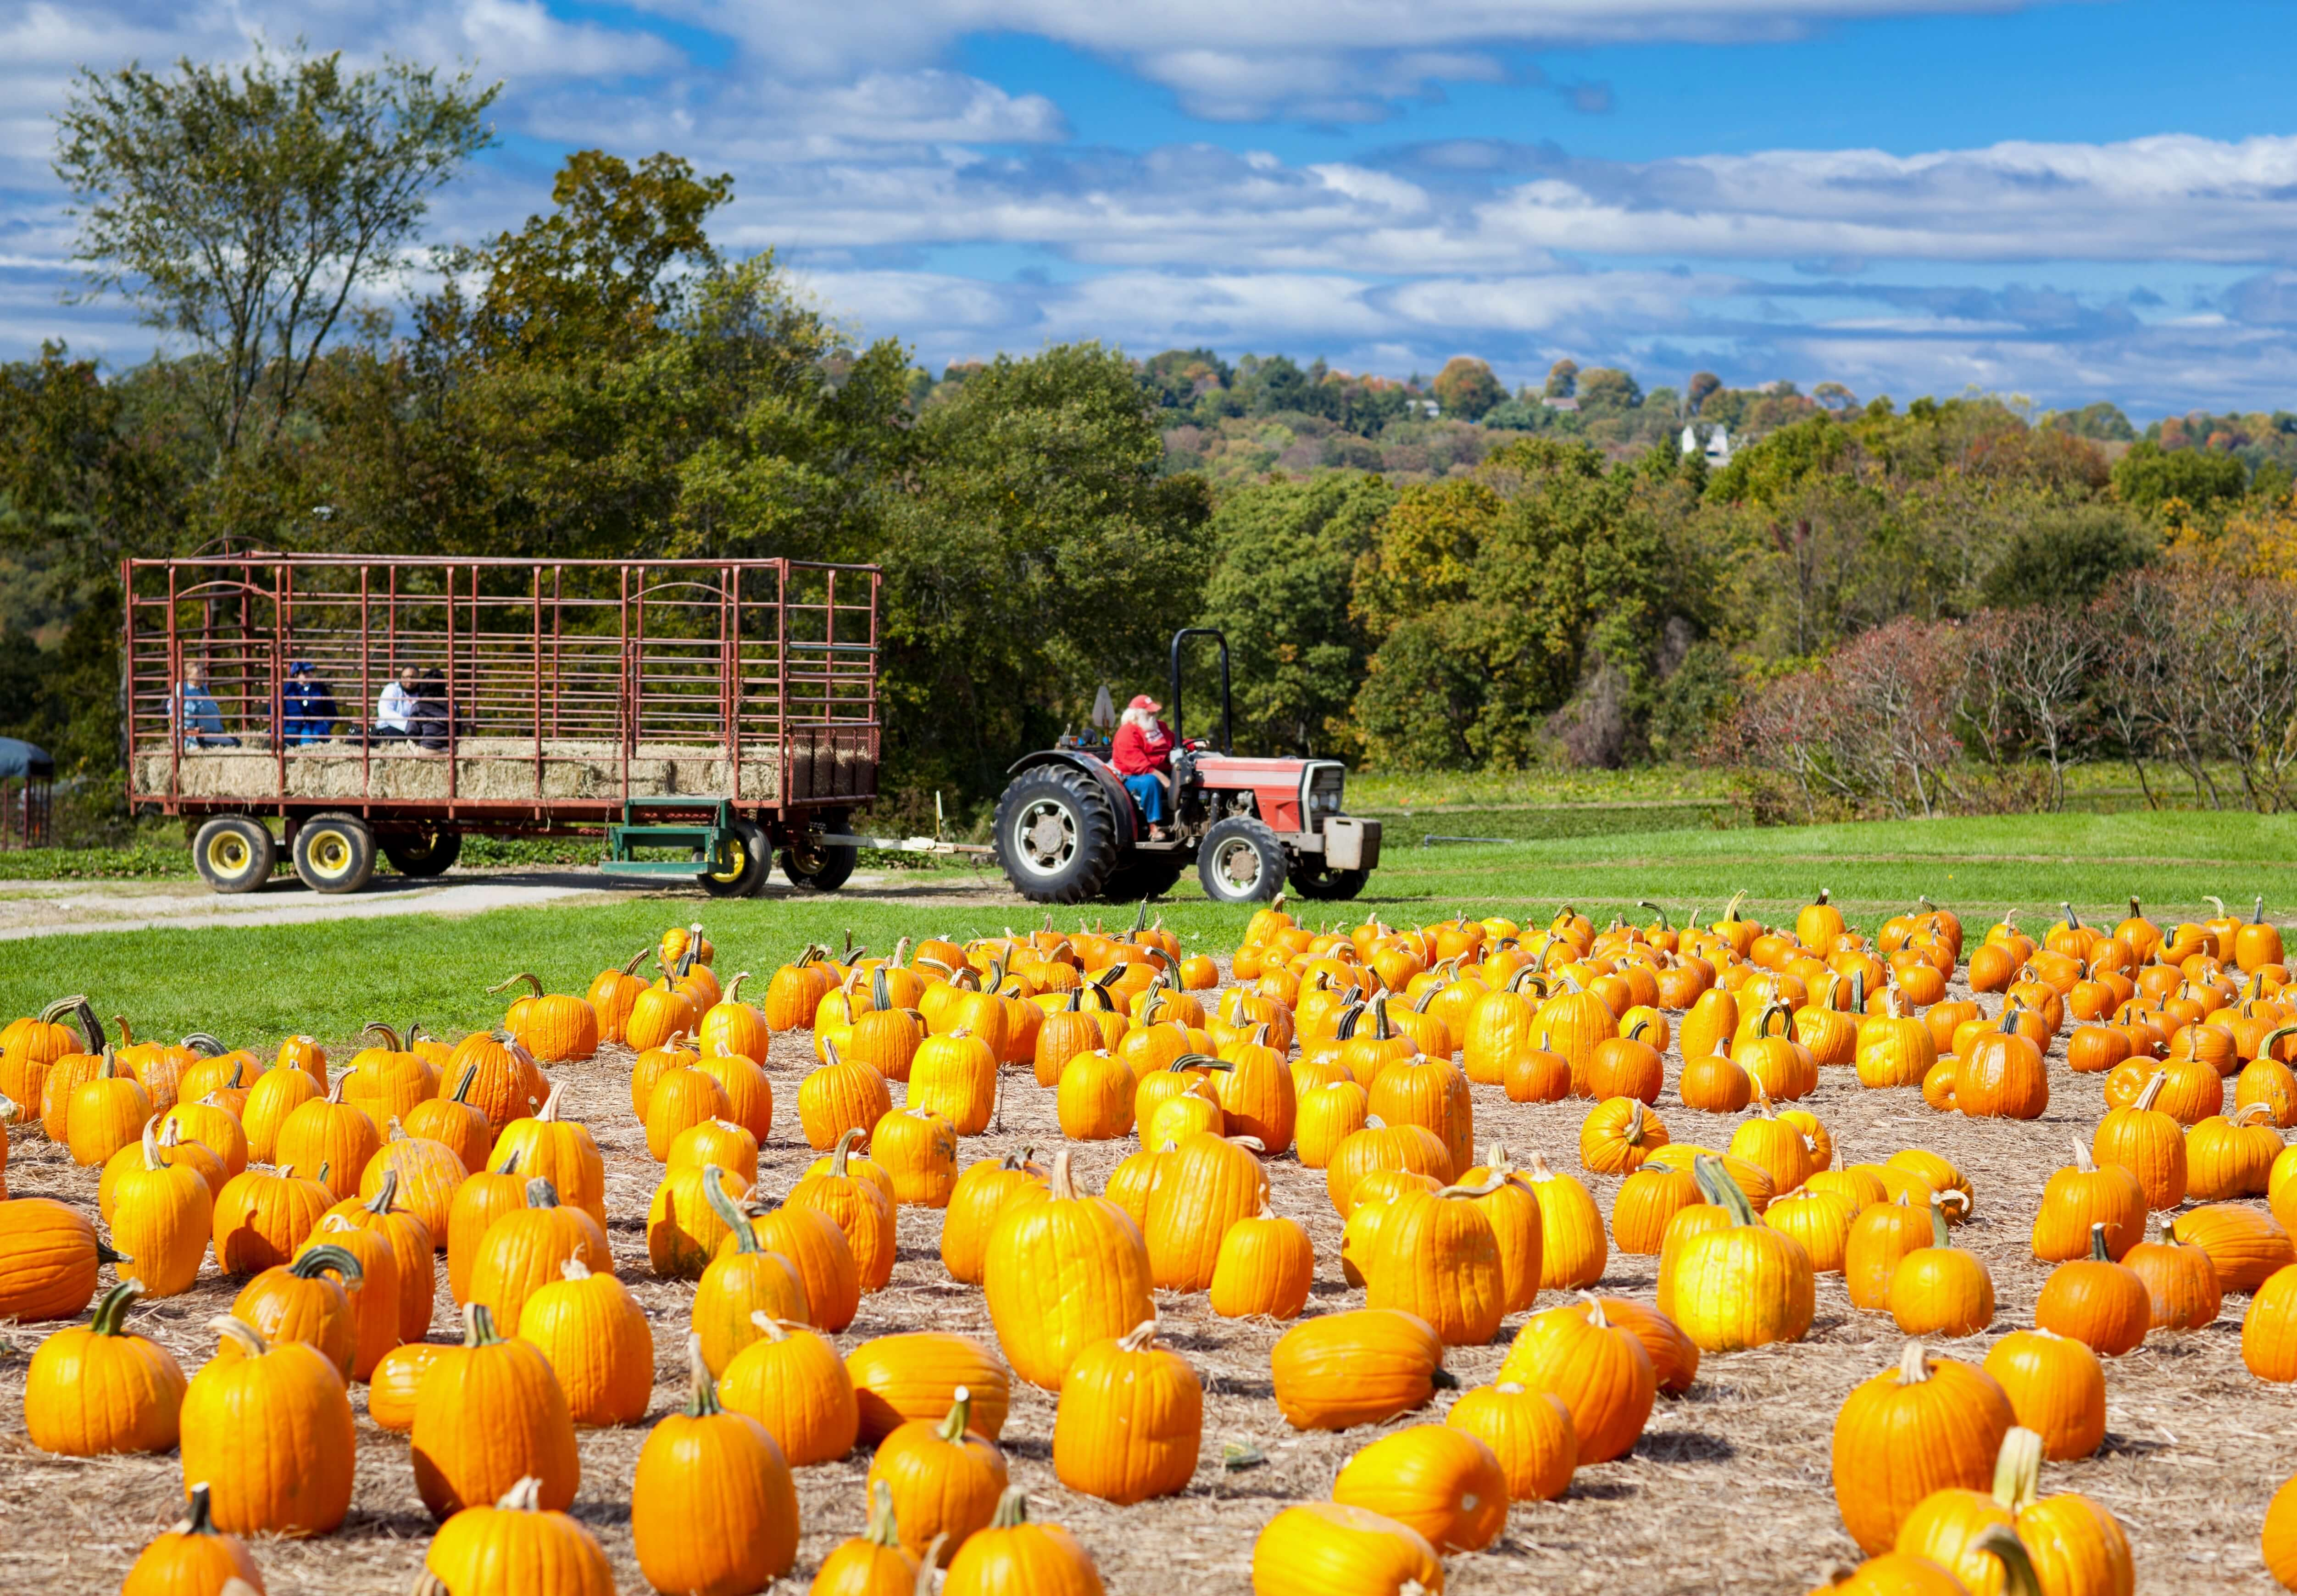 Wagon Tours & Hayrides In Metro Detroit